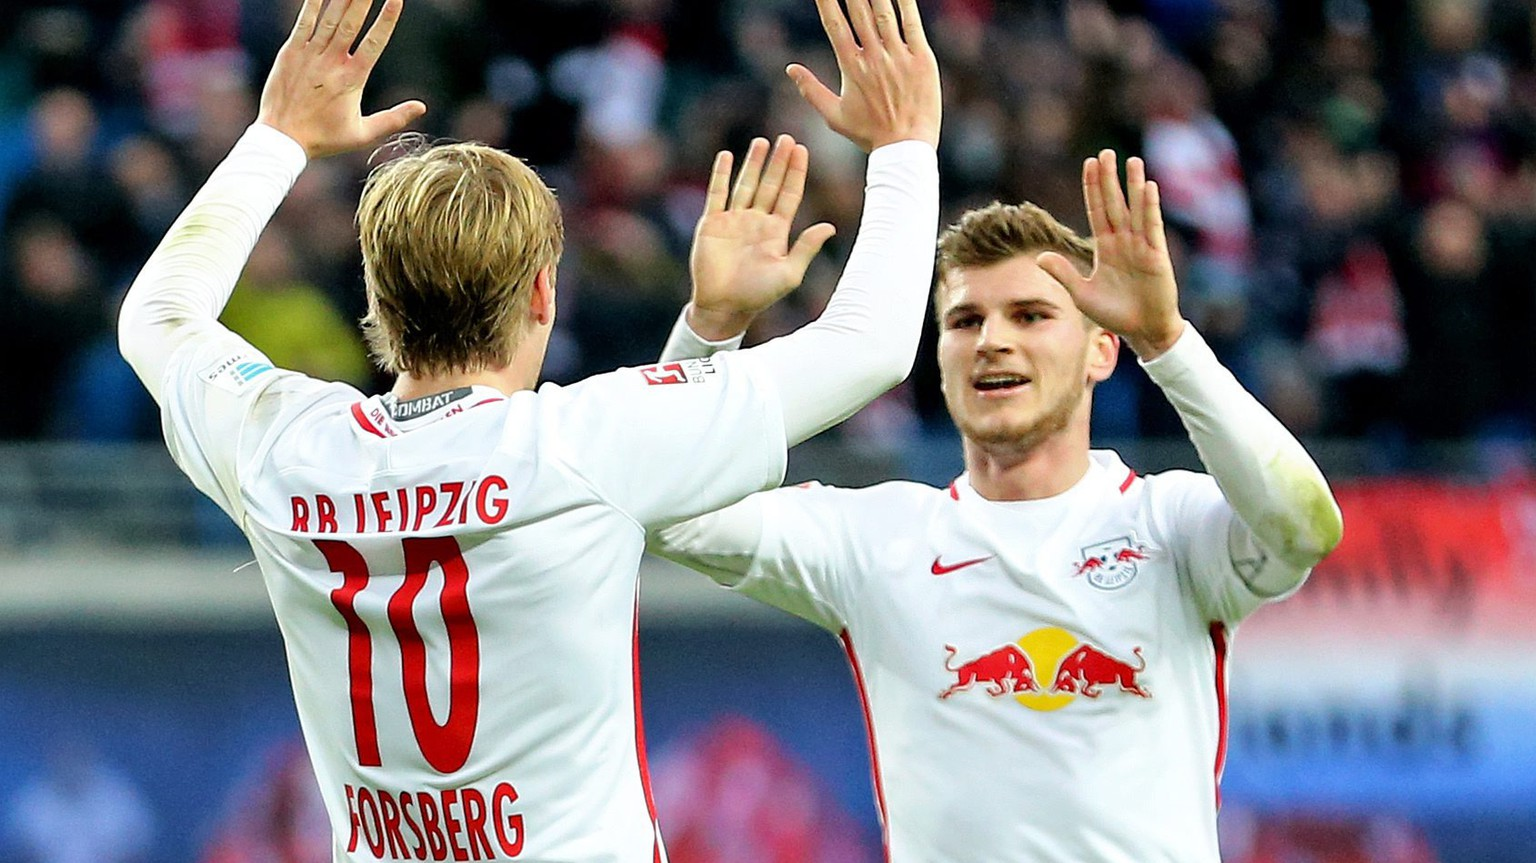 epa05619976 Leipzig's Emil Forsberg (L) and Timo Werner celebrate the 3:0 goal by Werner during the Bundesliga soccer match between RB Leipzig and FSV Mainz 05 at the Red Bull Arena in Leipzig, Germany, 06 November 2016. 